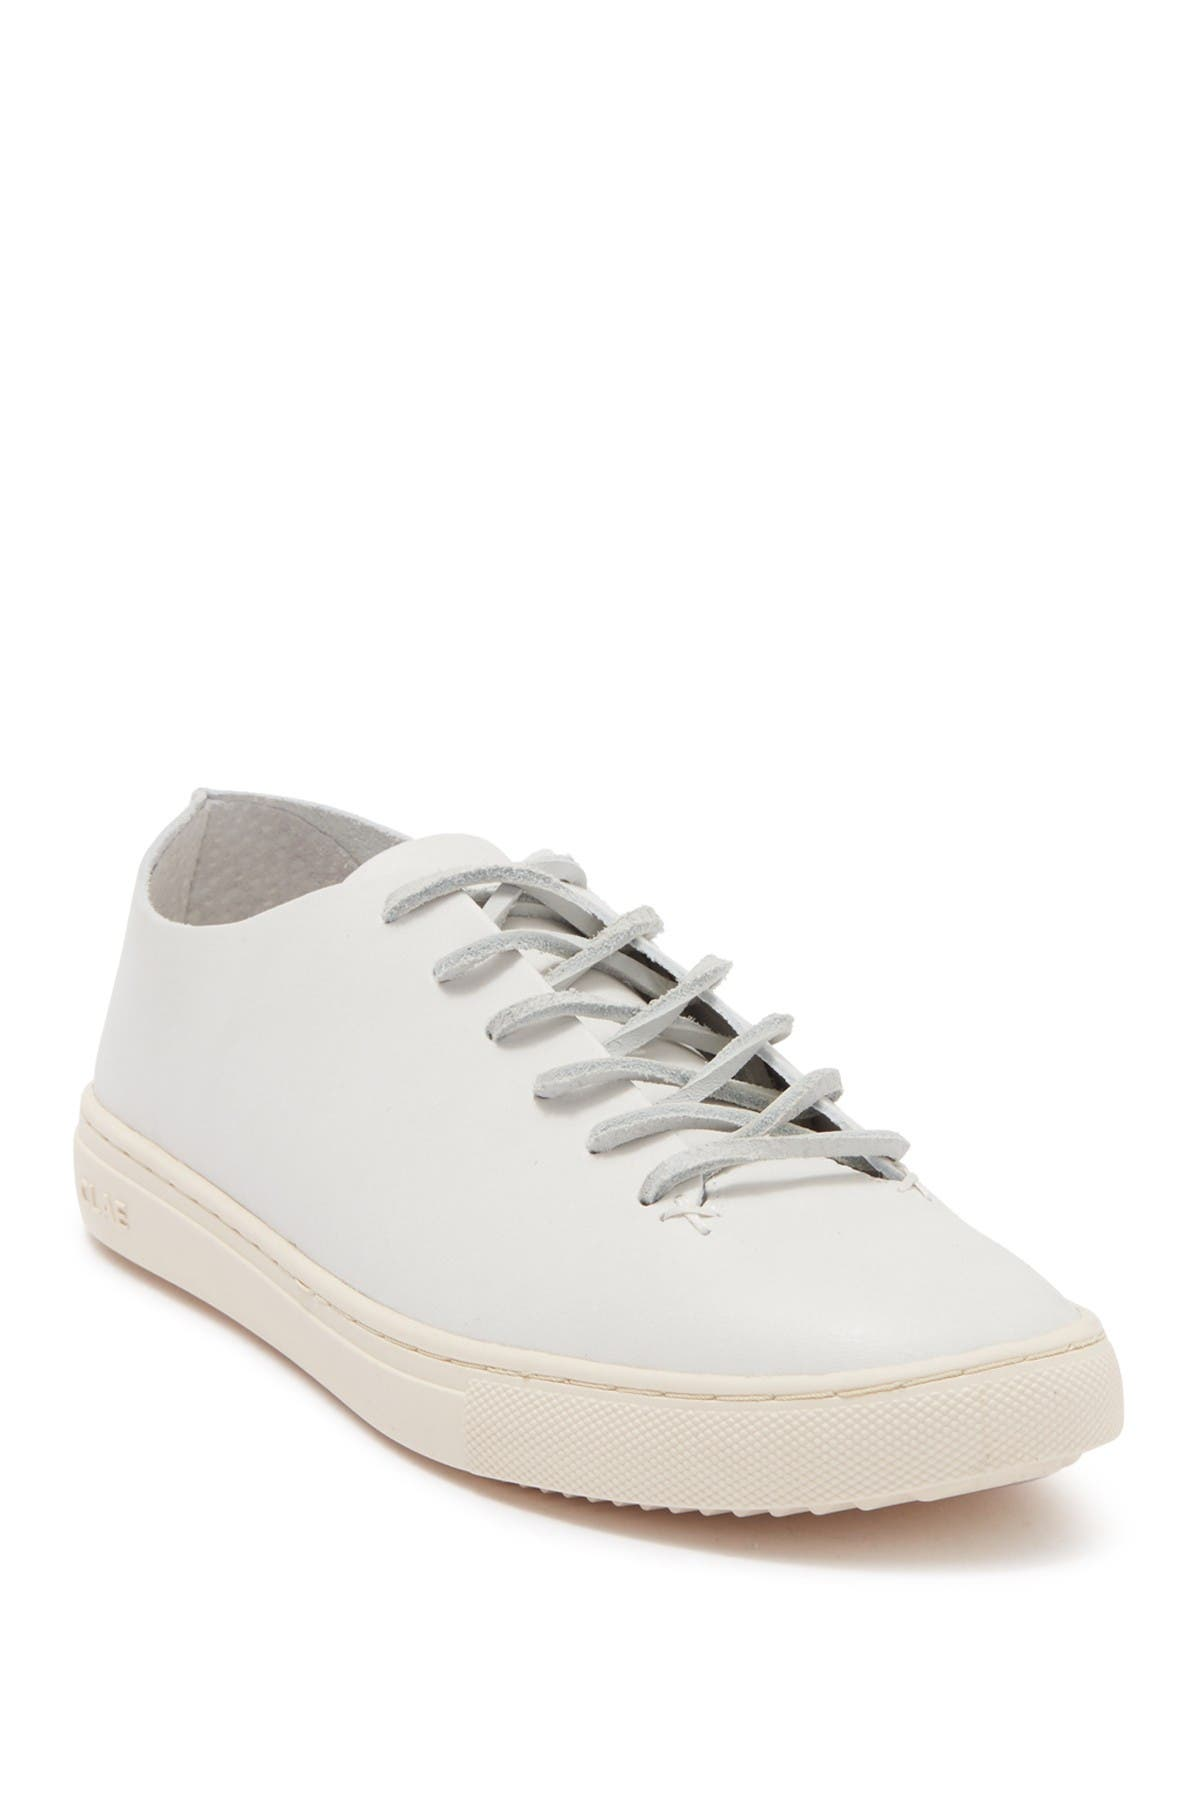 Image of Clae One Piece Sneaker